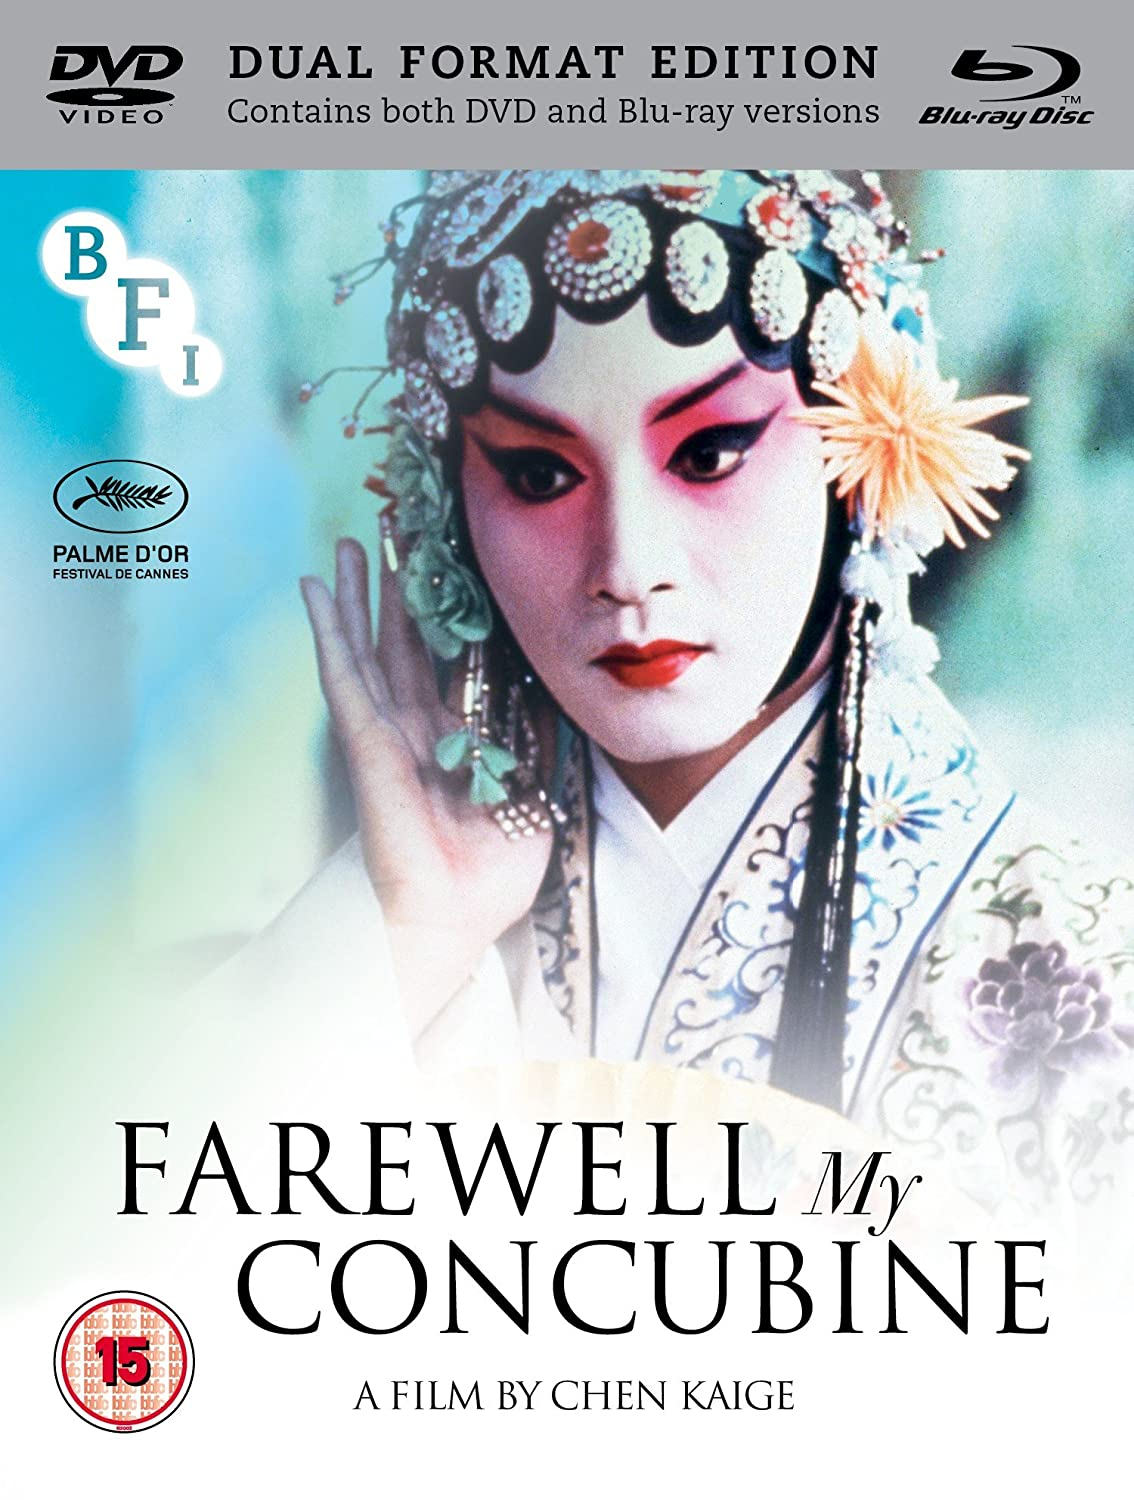 a summary of the film farewell my concubine The early part of the film focuses on the training and adolescent relationships of two young men who are farewell, my concubine is a remarkable achievement and a.